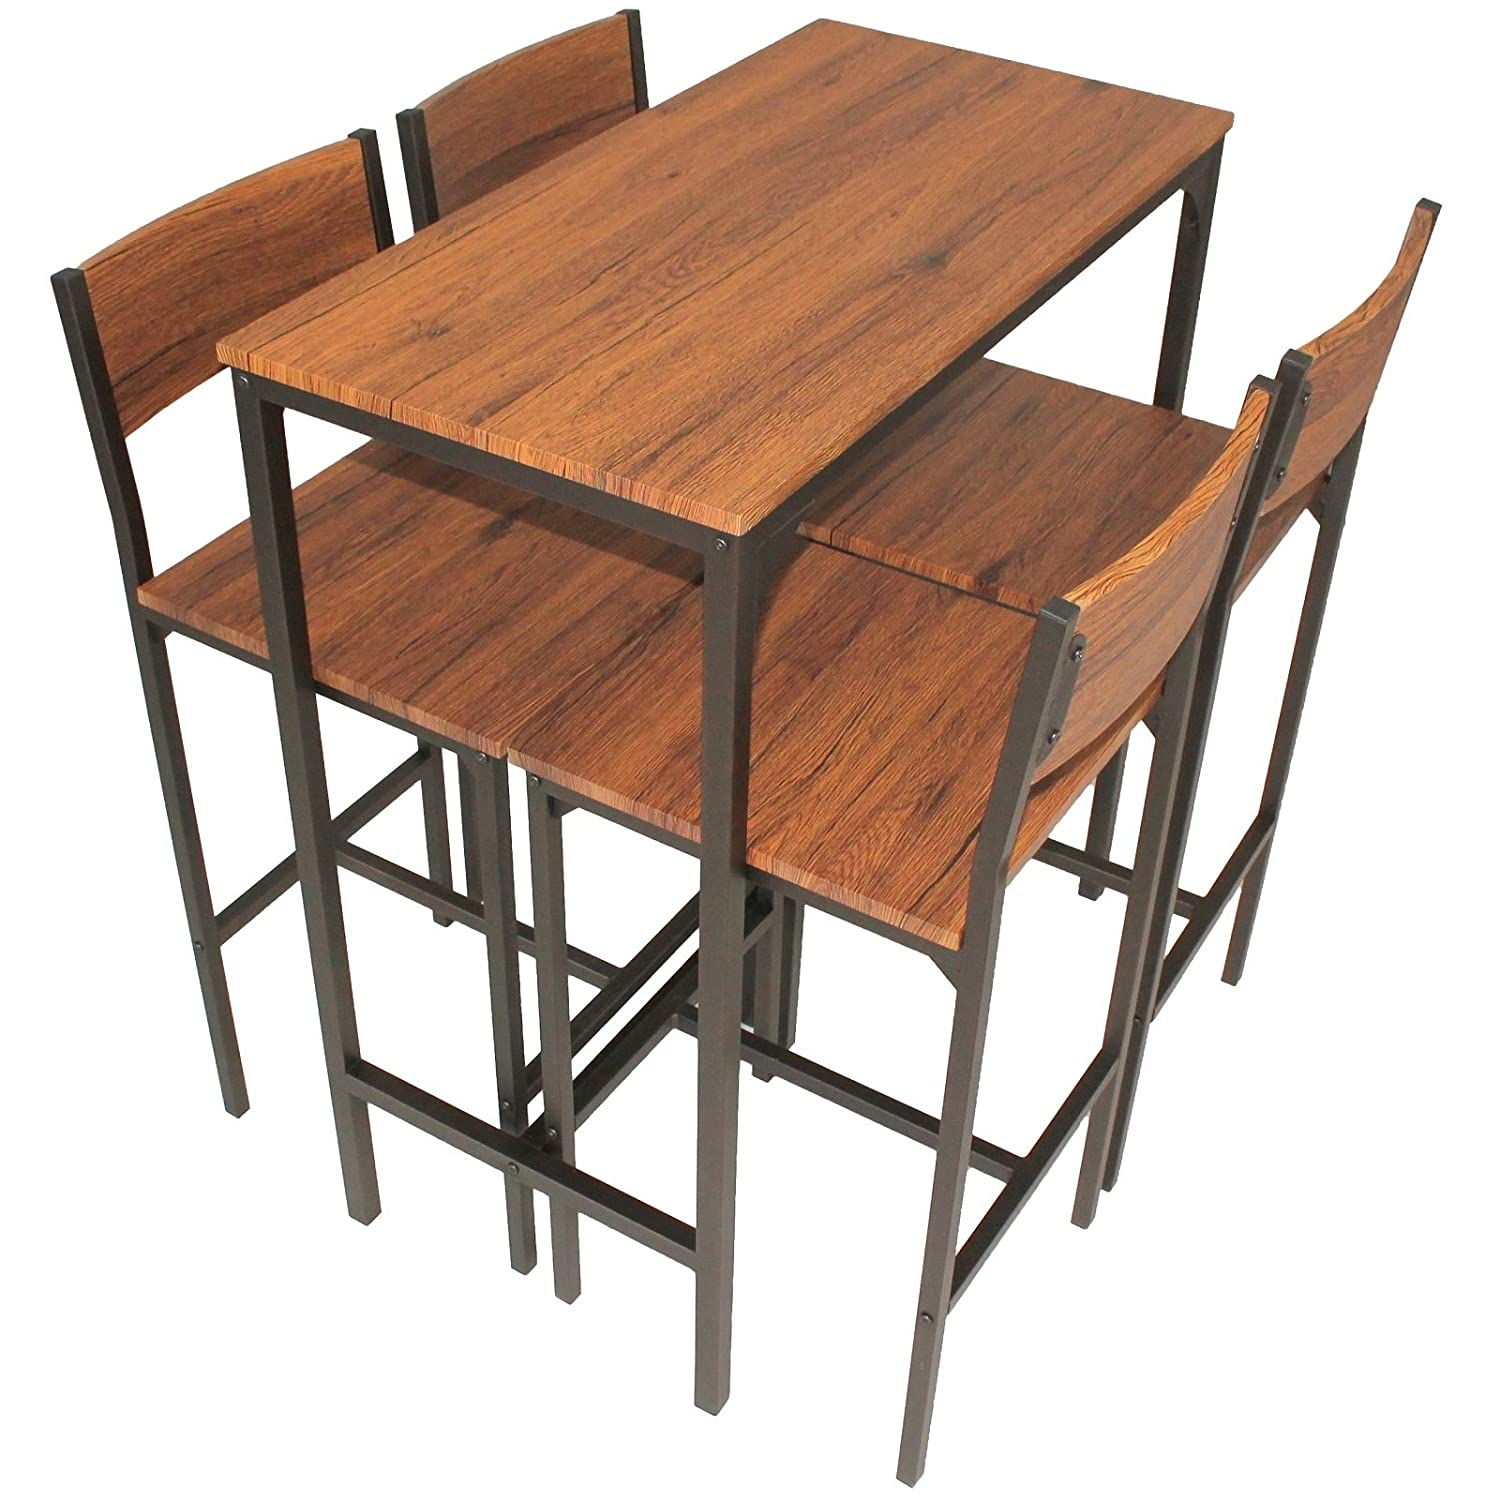 YELLOO Set Tisch Bar und 4 Hocker Design Braun Walnuss Pizzeria Mod ...